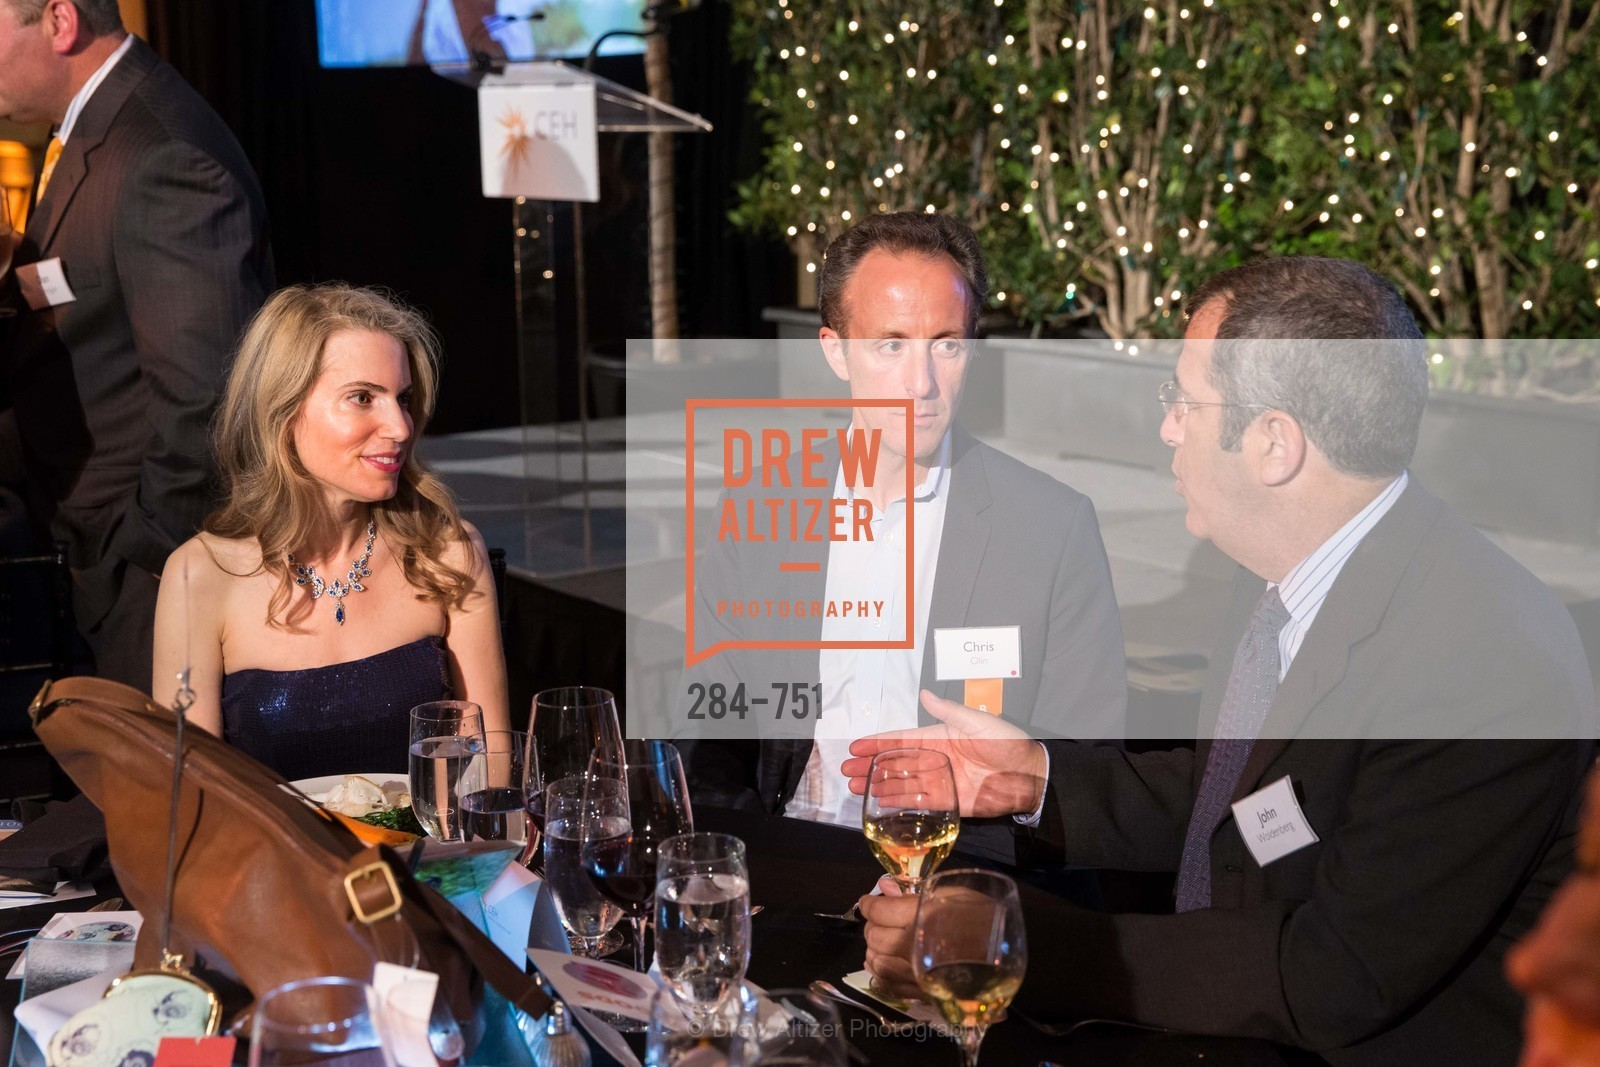 Nadine Weil, Chris Olin, John Woldenberg, CENTER FOR ENVIRONMENTAL HEALTH (CEH) 2015 Gala, Bently Reserve, May 28th, 2015,Drew Altizer, Drew Altizer Photography, full-service agency, private events, San Francisco photographer, photographer california